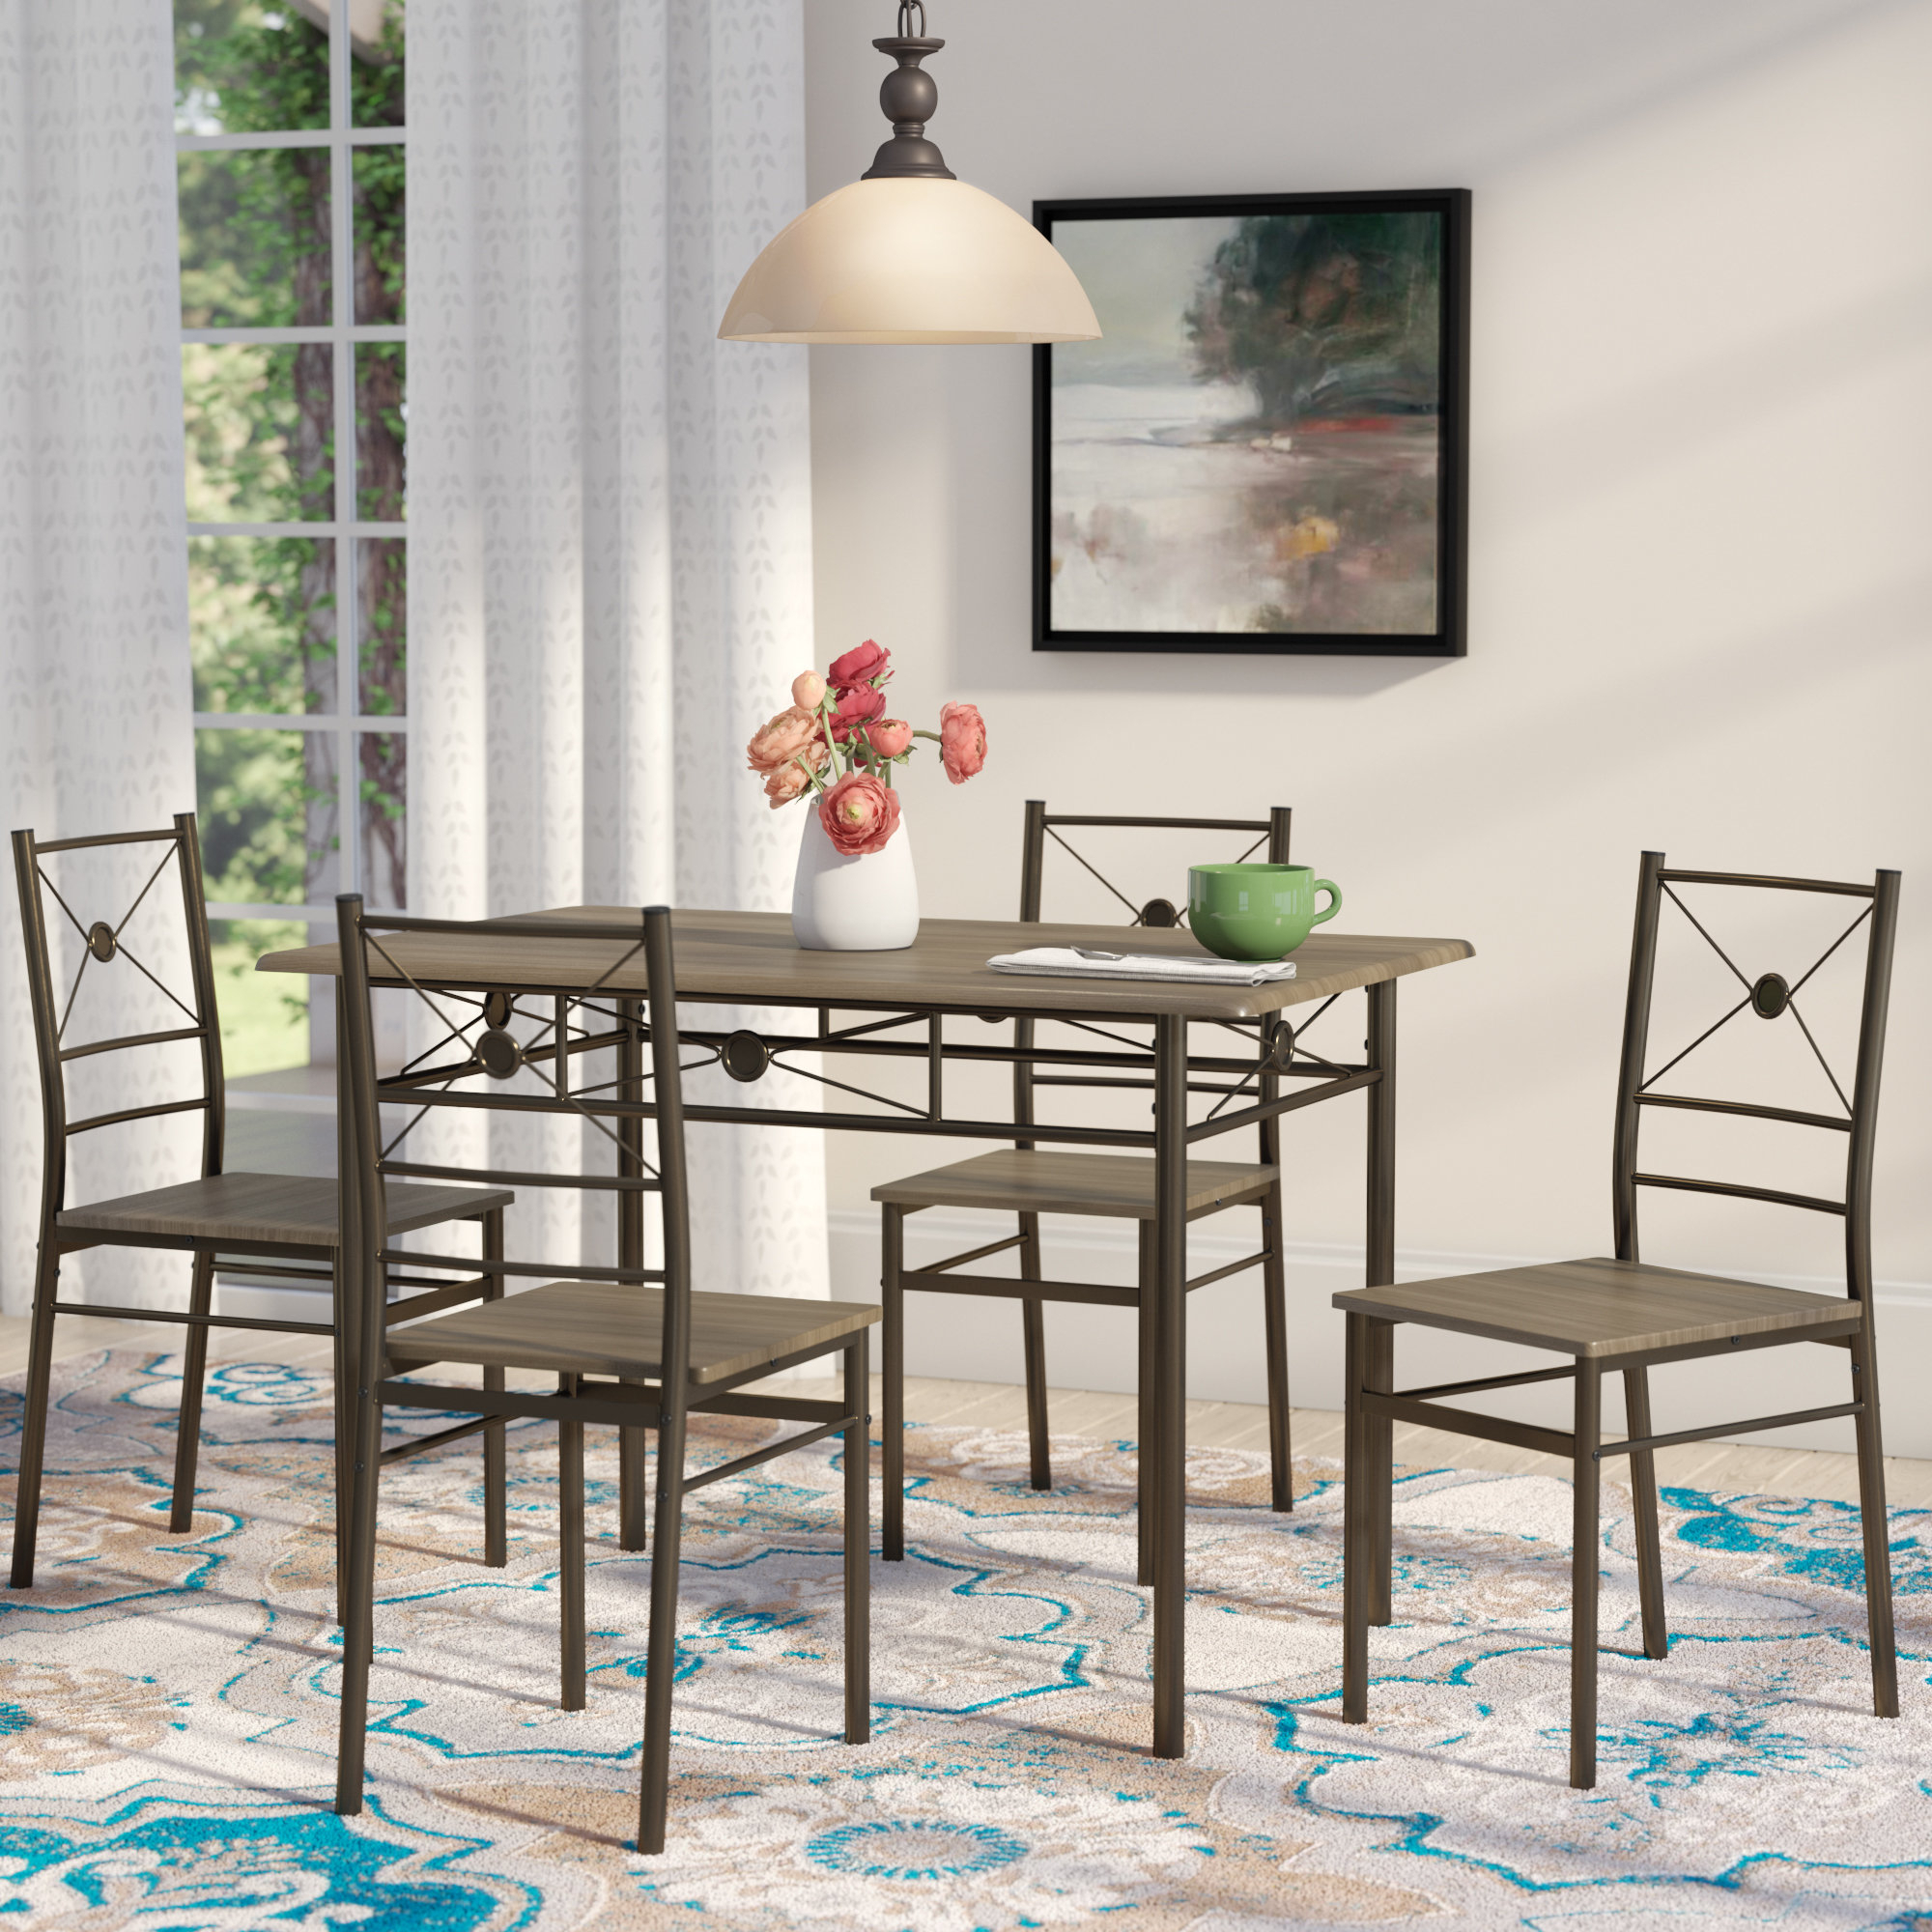 Kieffer 5 Piece Dining Set For Most Recent Stouferberg 5 Piece Dining Sets (Image 12 of 20)